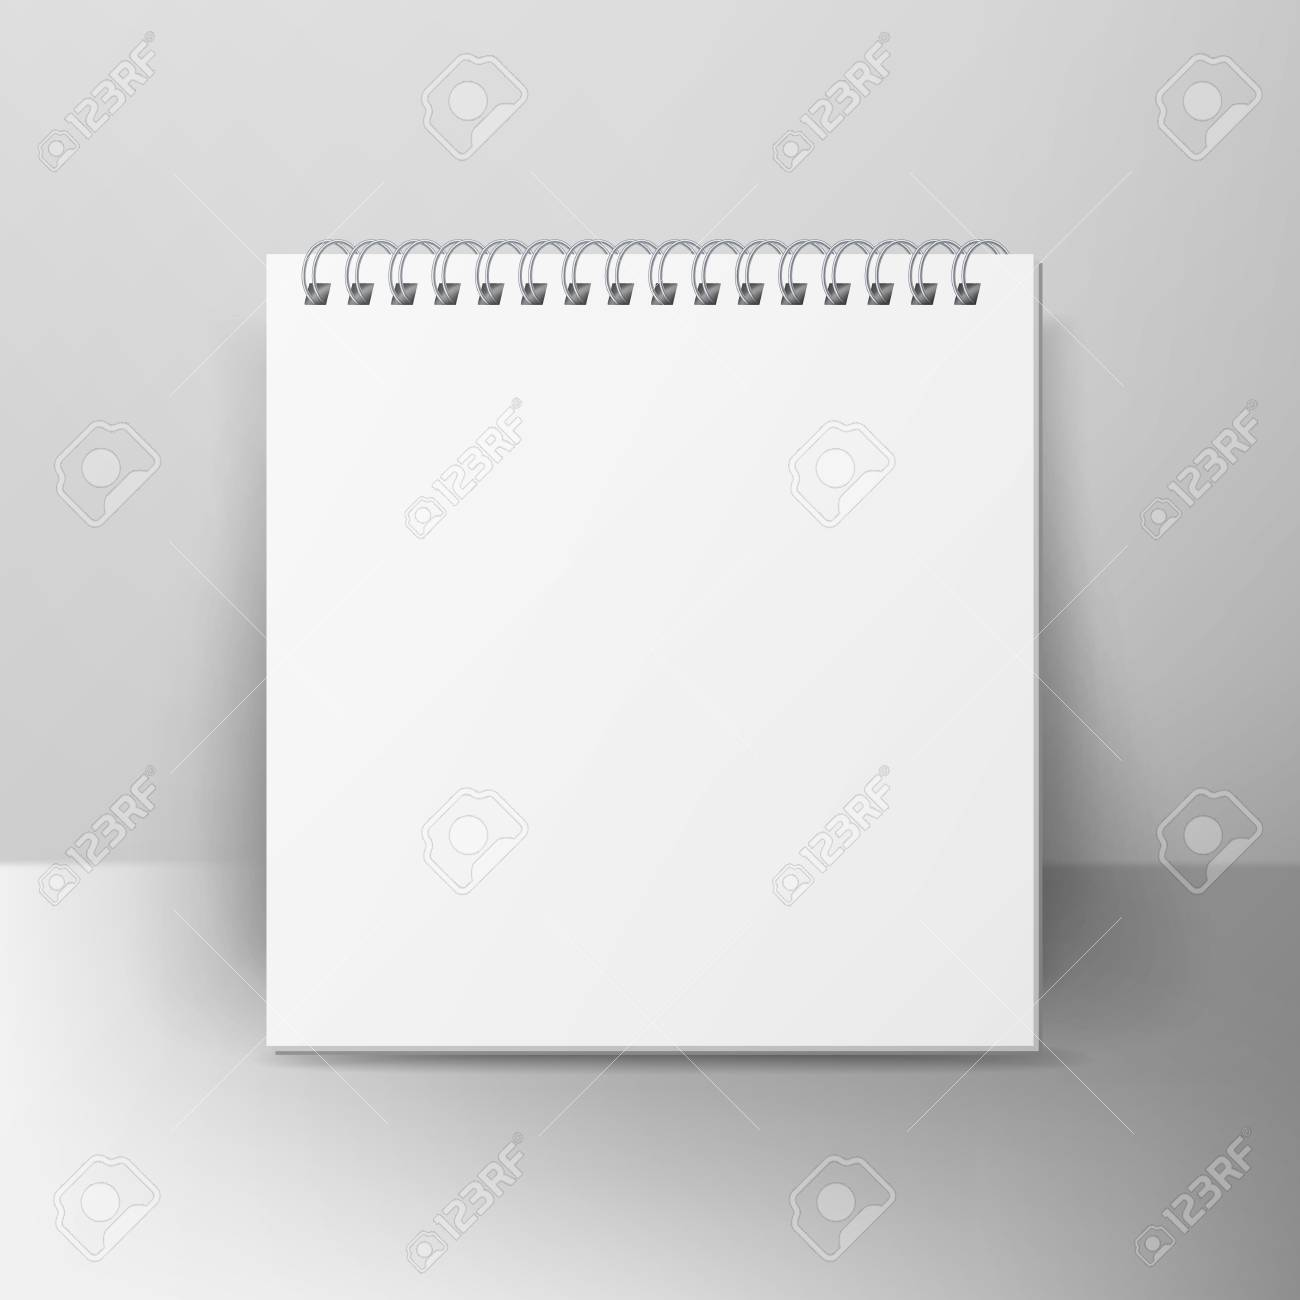 Spiral Empty Notepad Blank Mockup Template For Advertising Branding